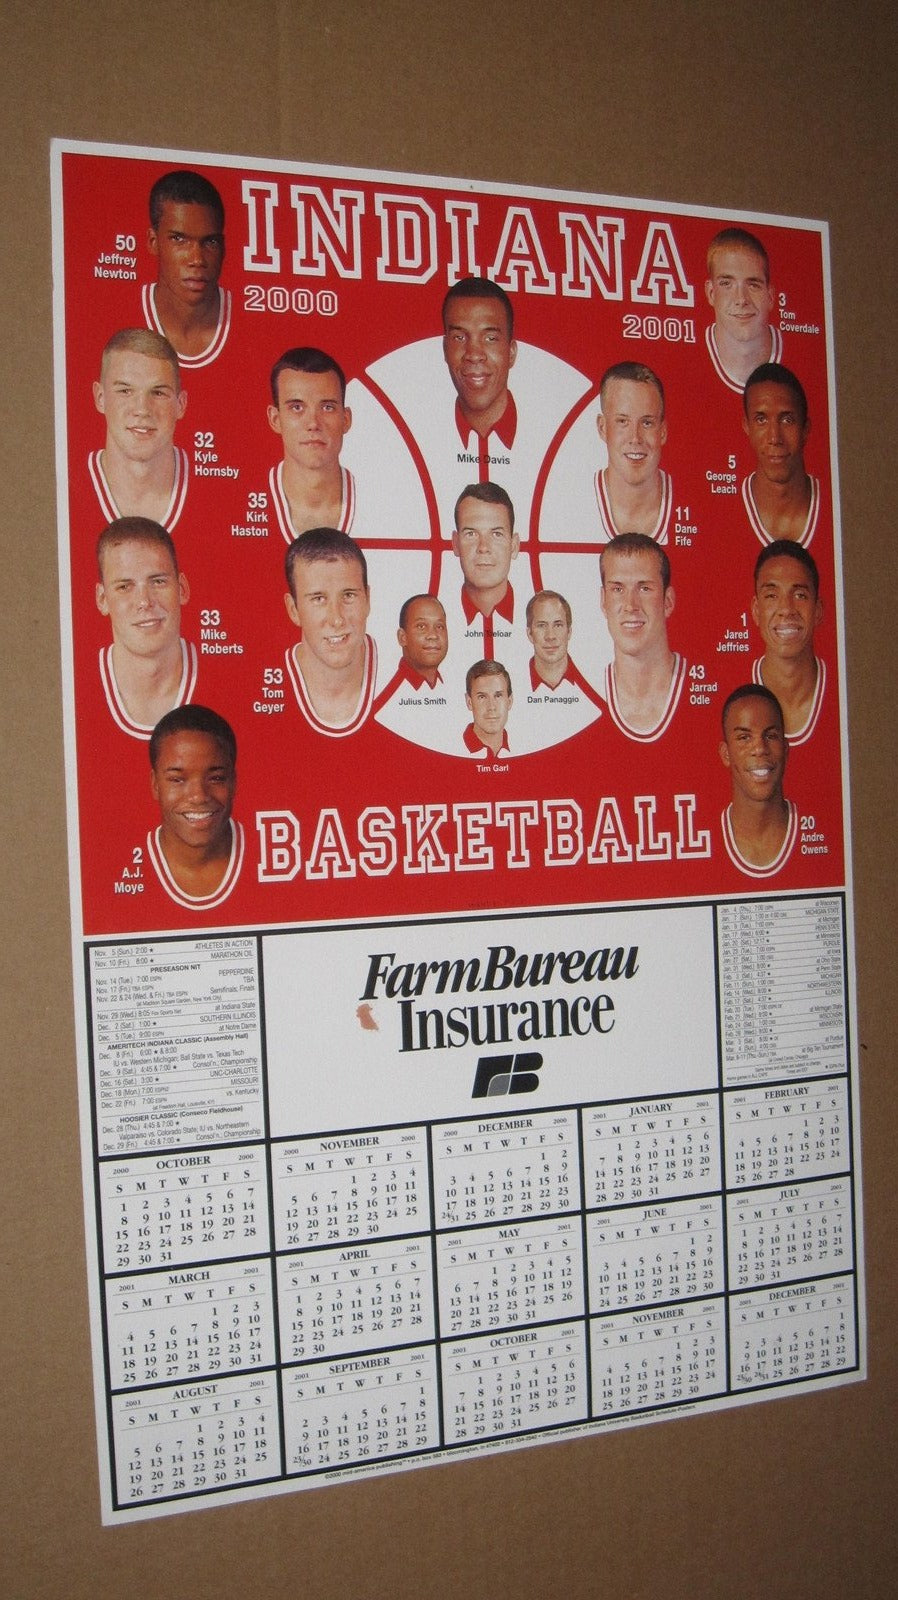 2000-2001 Indiana University Basketball 11x17 Schedule Poster - Vintage Indy Sports